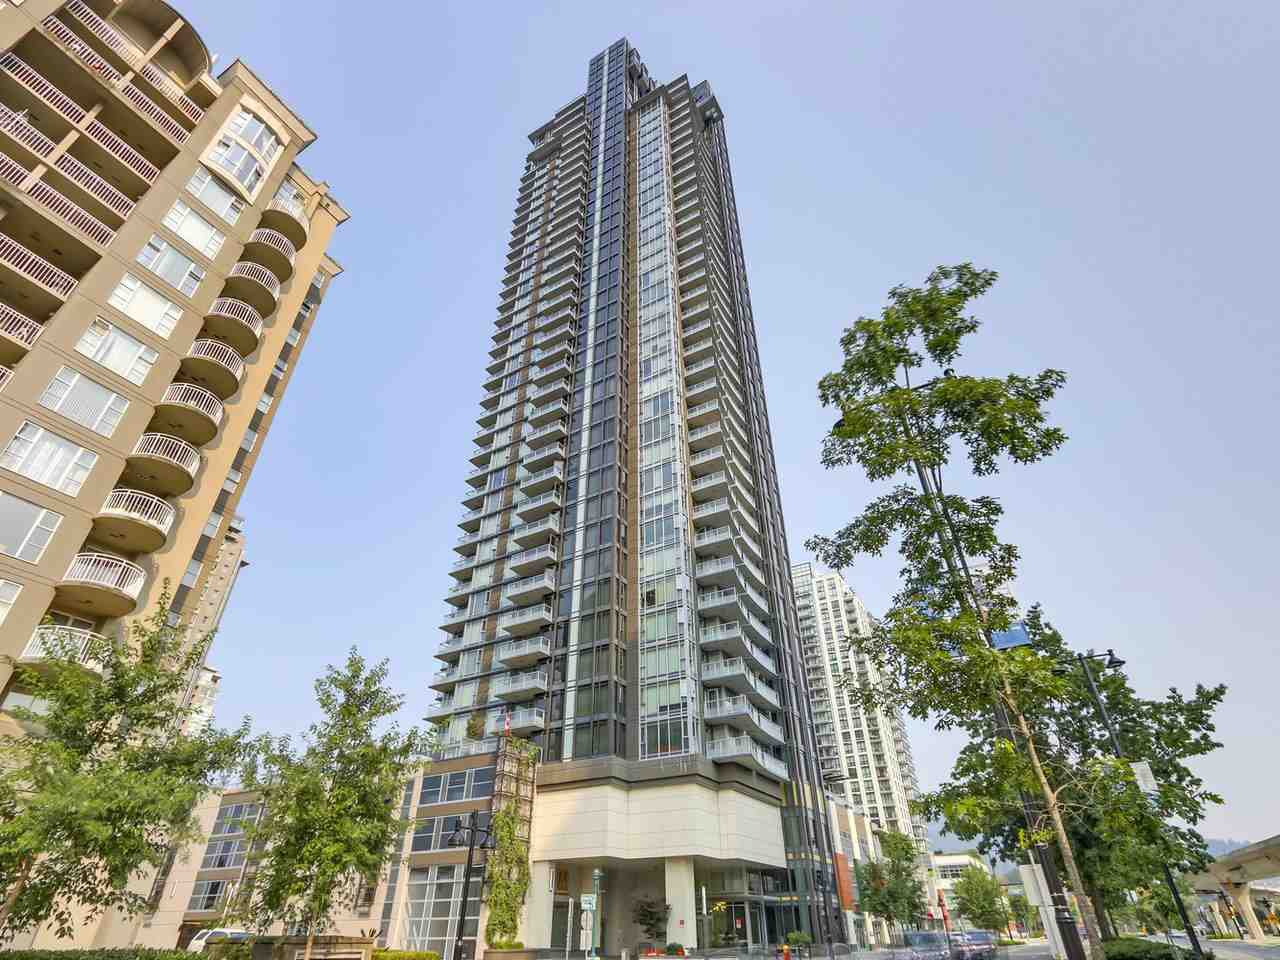 Main Photo: 3202 1188 PINETREE WAY in Coquitlam: North Coquitlam Condo for sale : MLS®# R2315636